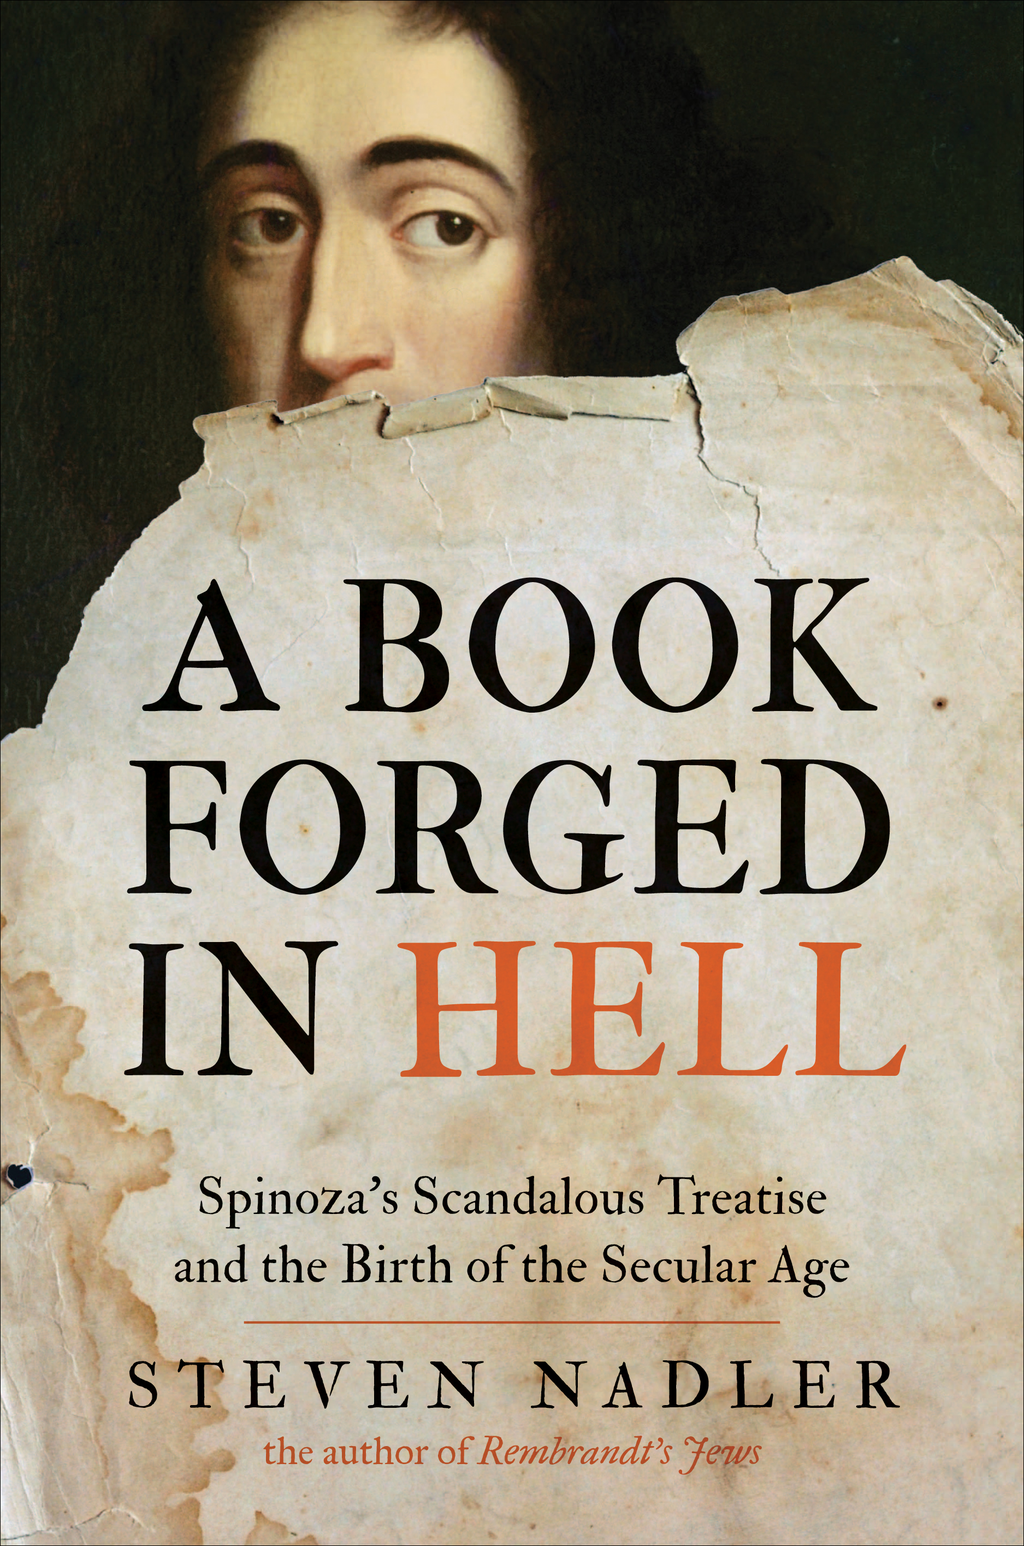 A Book Forged in Hell Spinoza's Scandalous Treatise and the Birth of the Secular Age